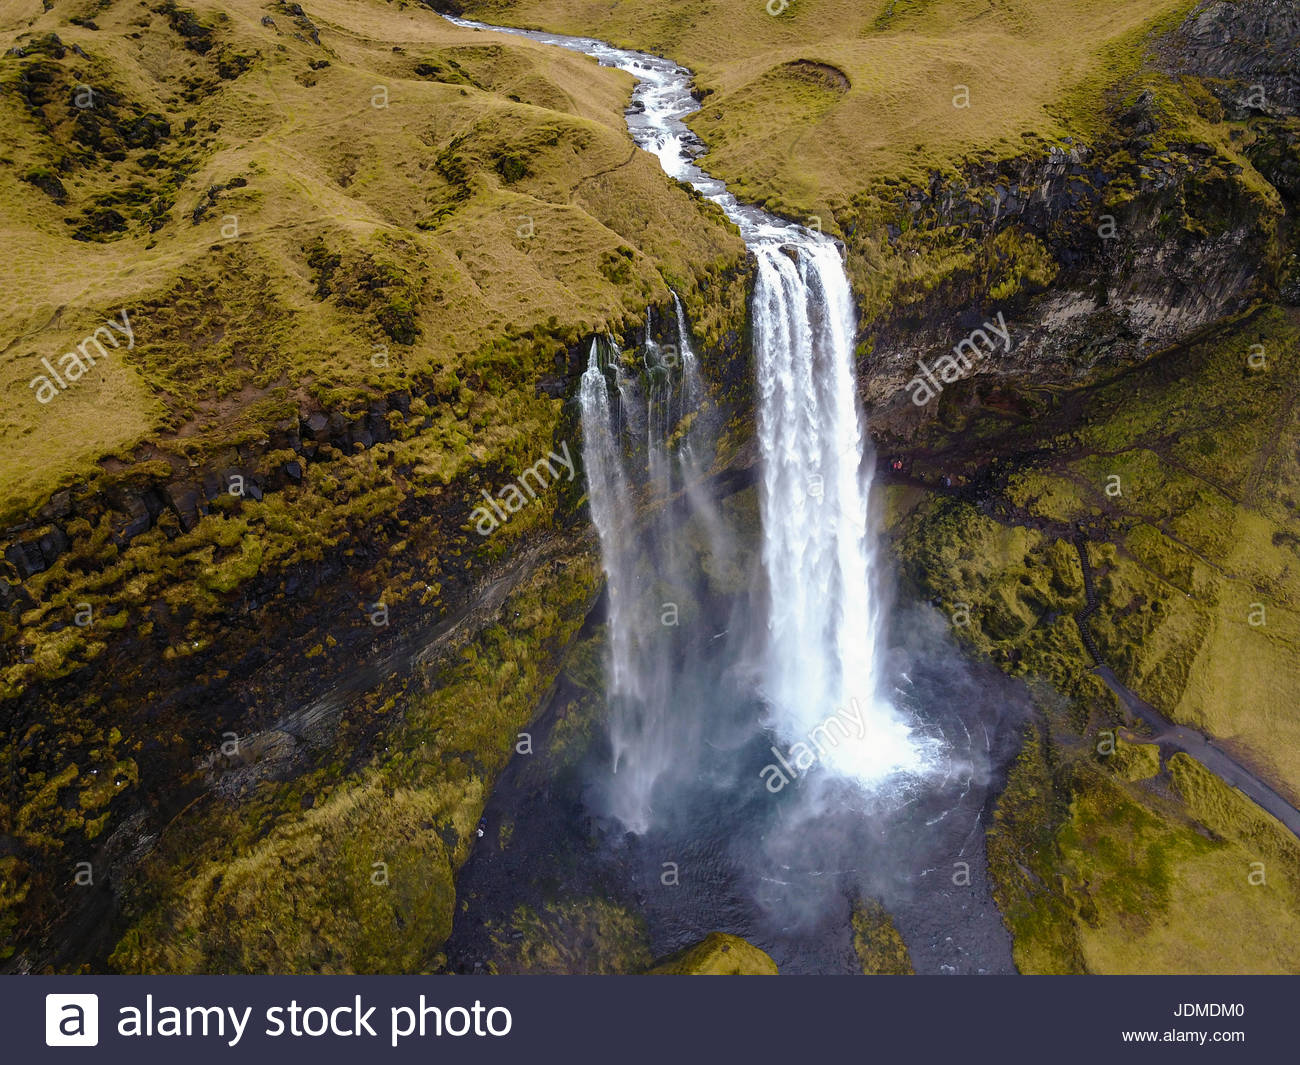 An aerial of Seljafoss waterfall in Iceland. - Stock Image